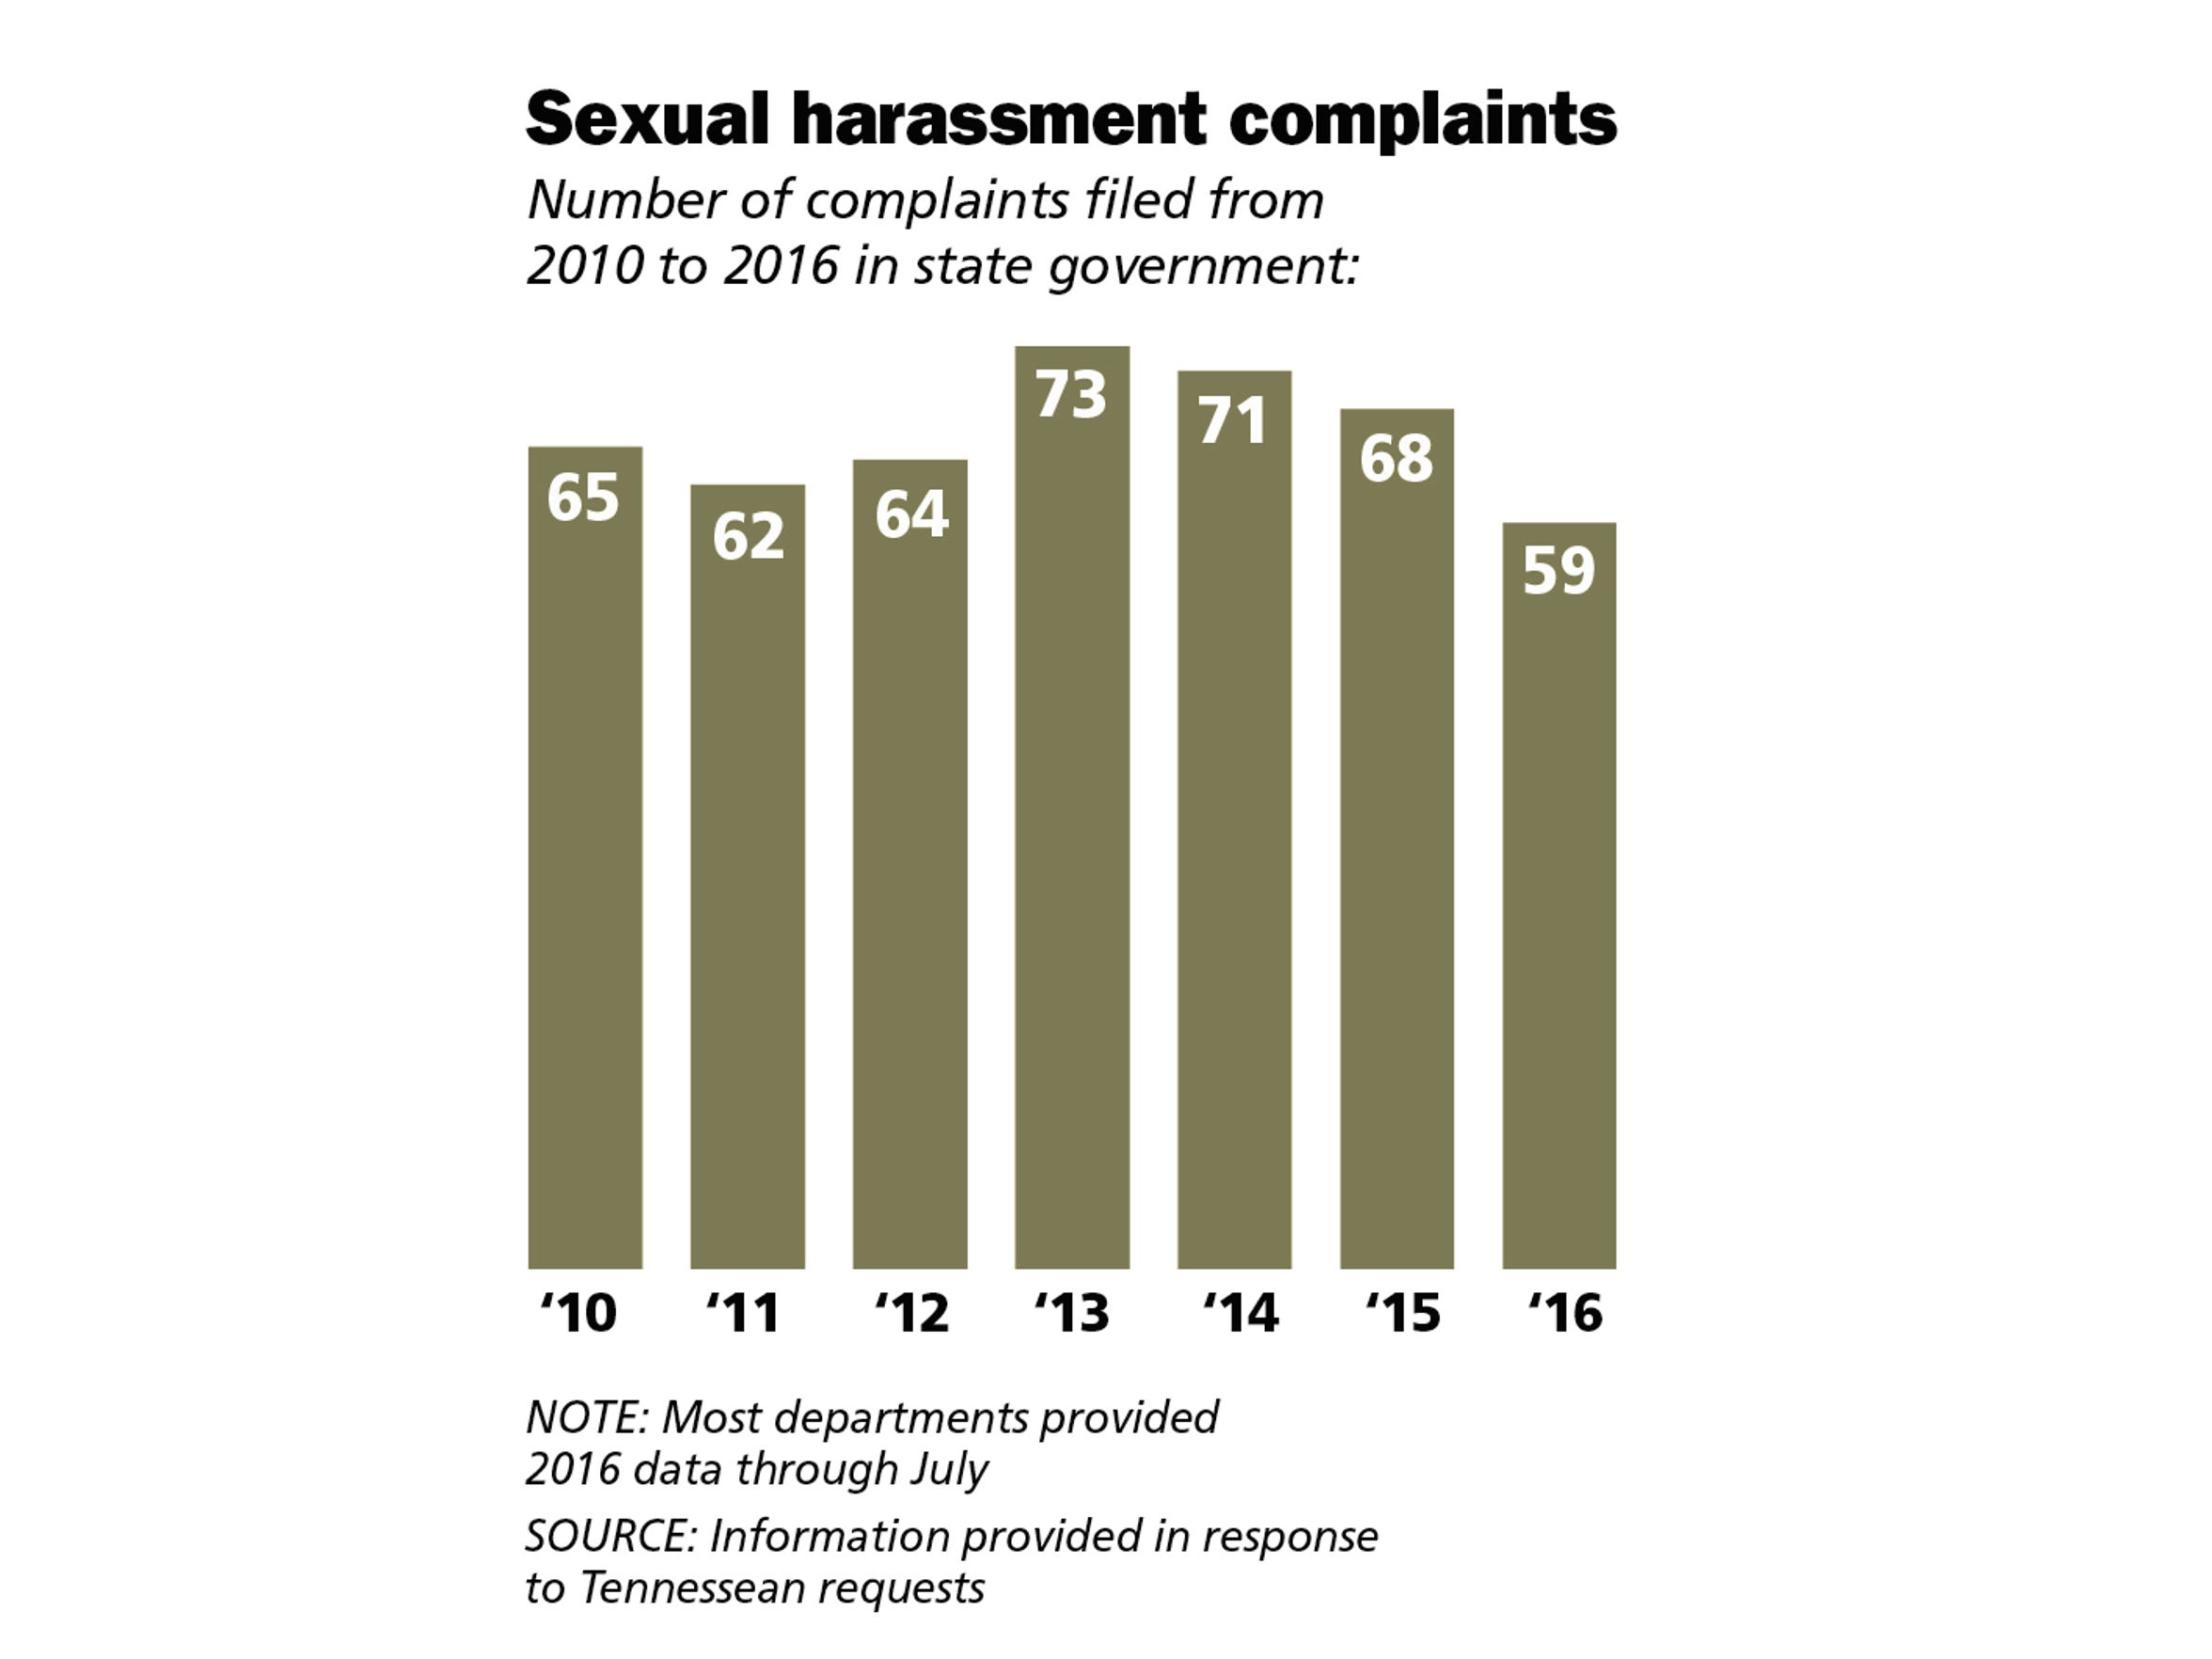 Sexual harassment complaints filed from 2010 to 2016